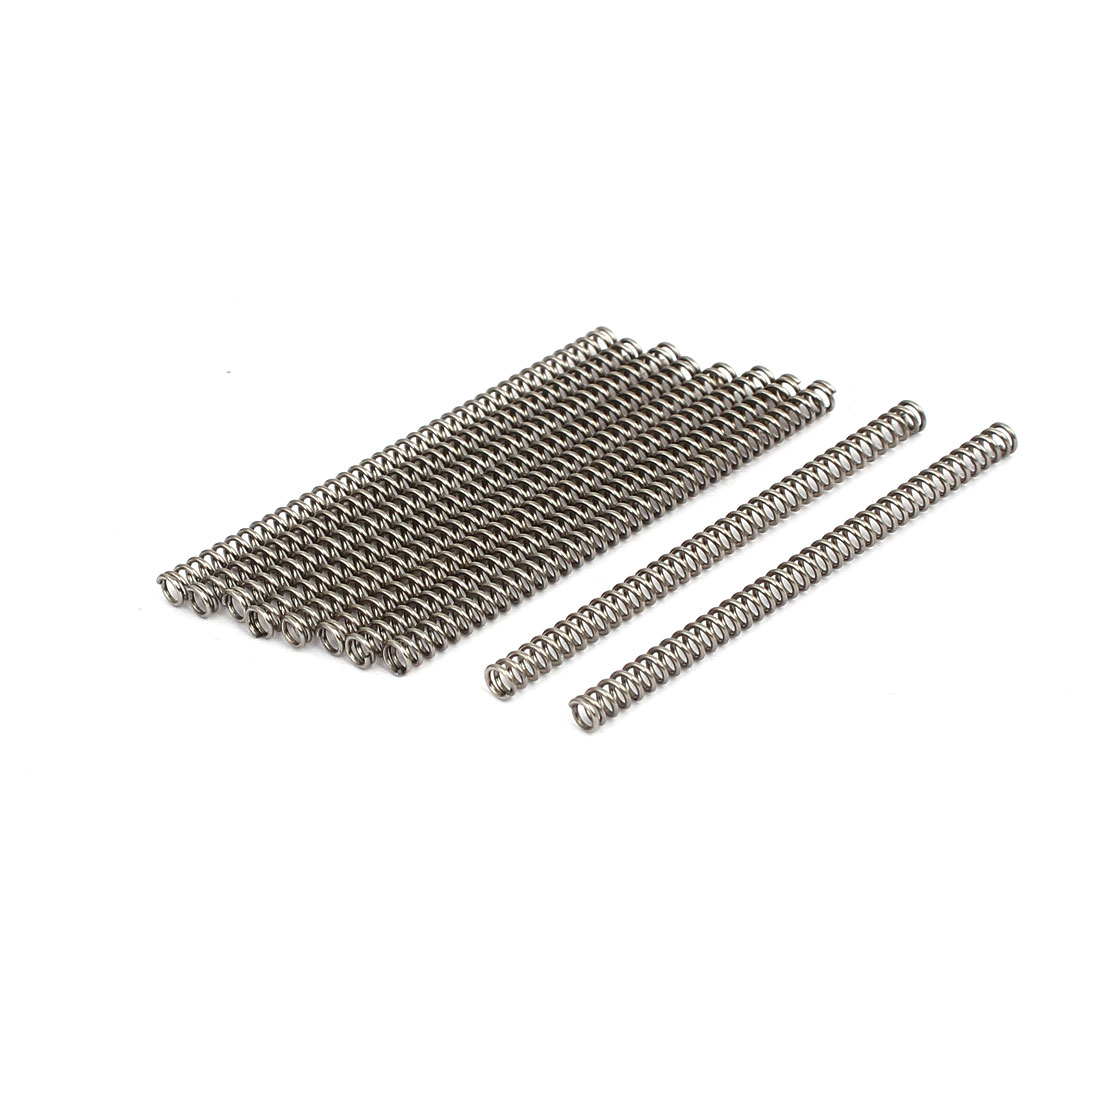 0.5mmx3mmx50mm 304 Stainless Steel Compression Springs 10pcs